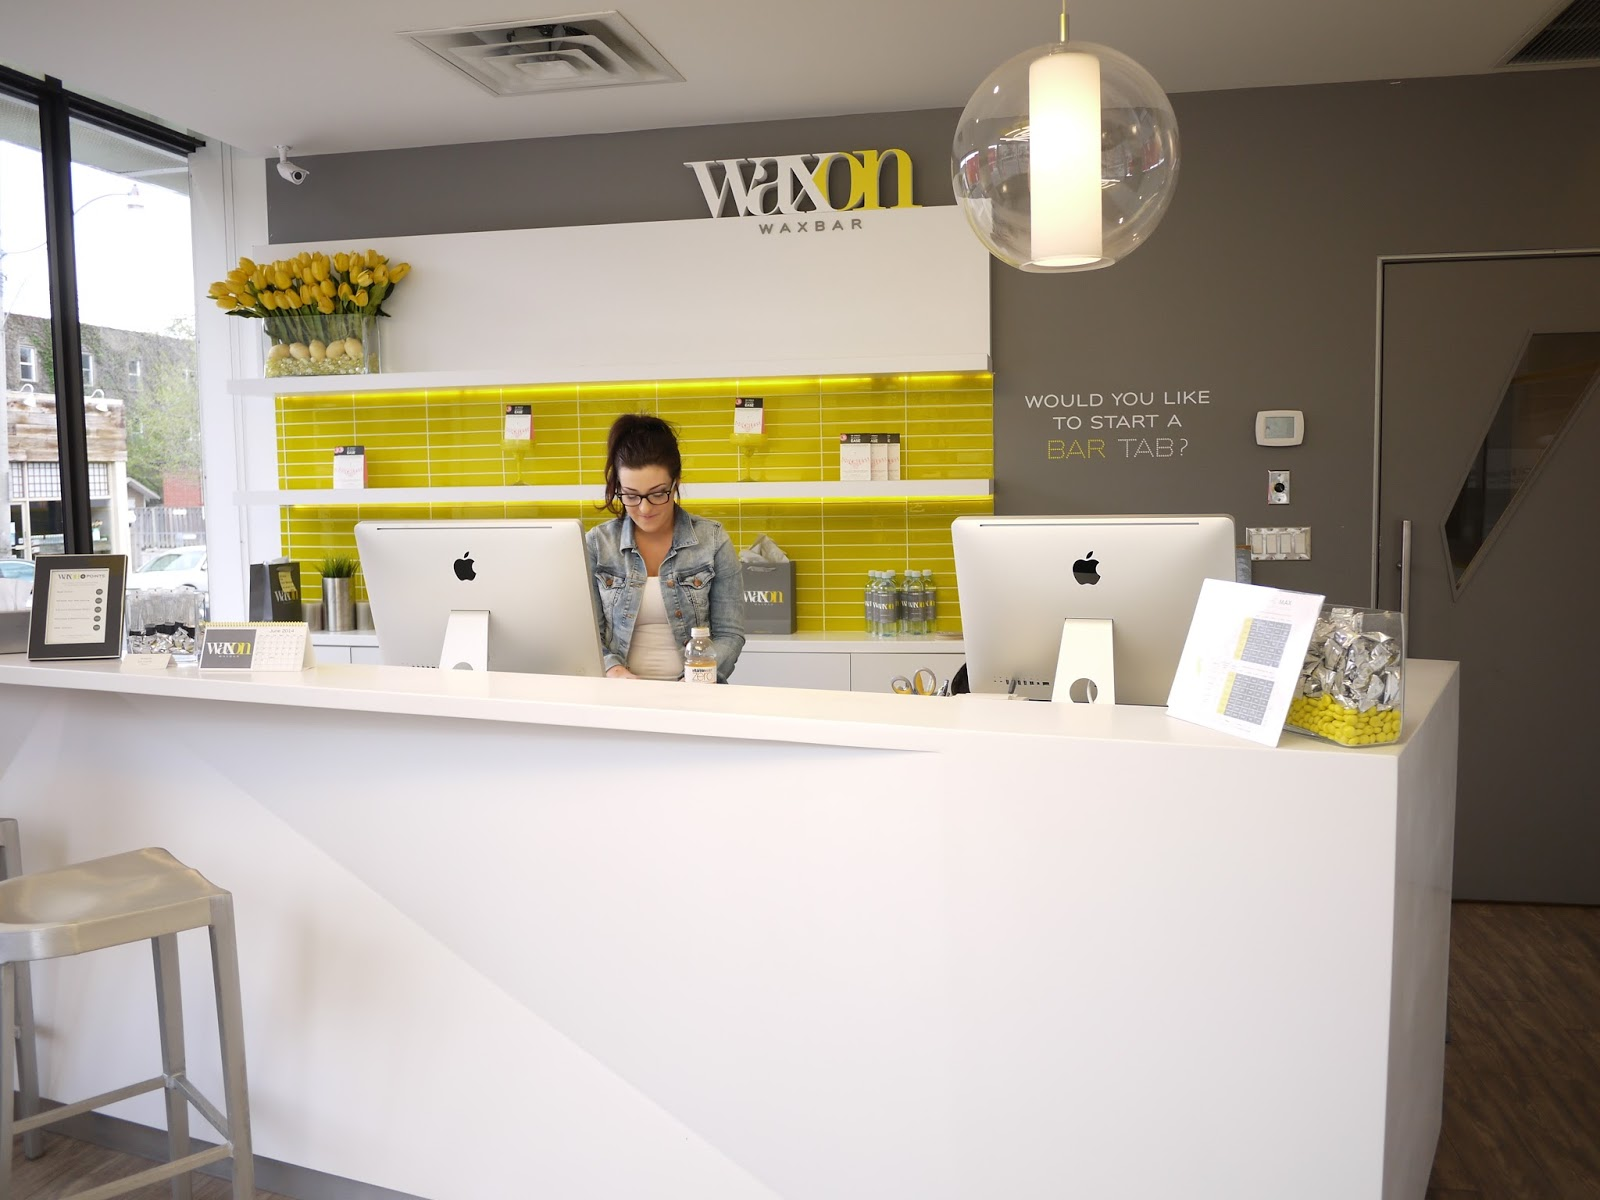 waxon wax bar toronto review